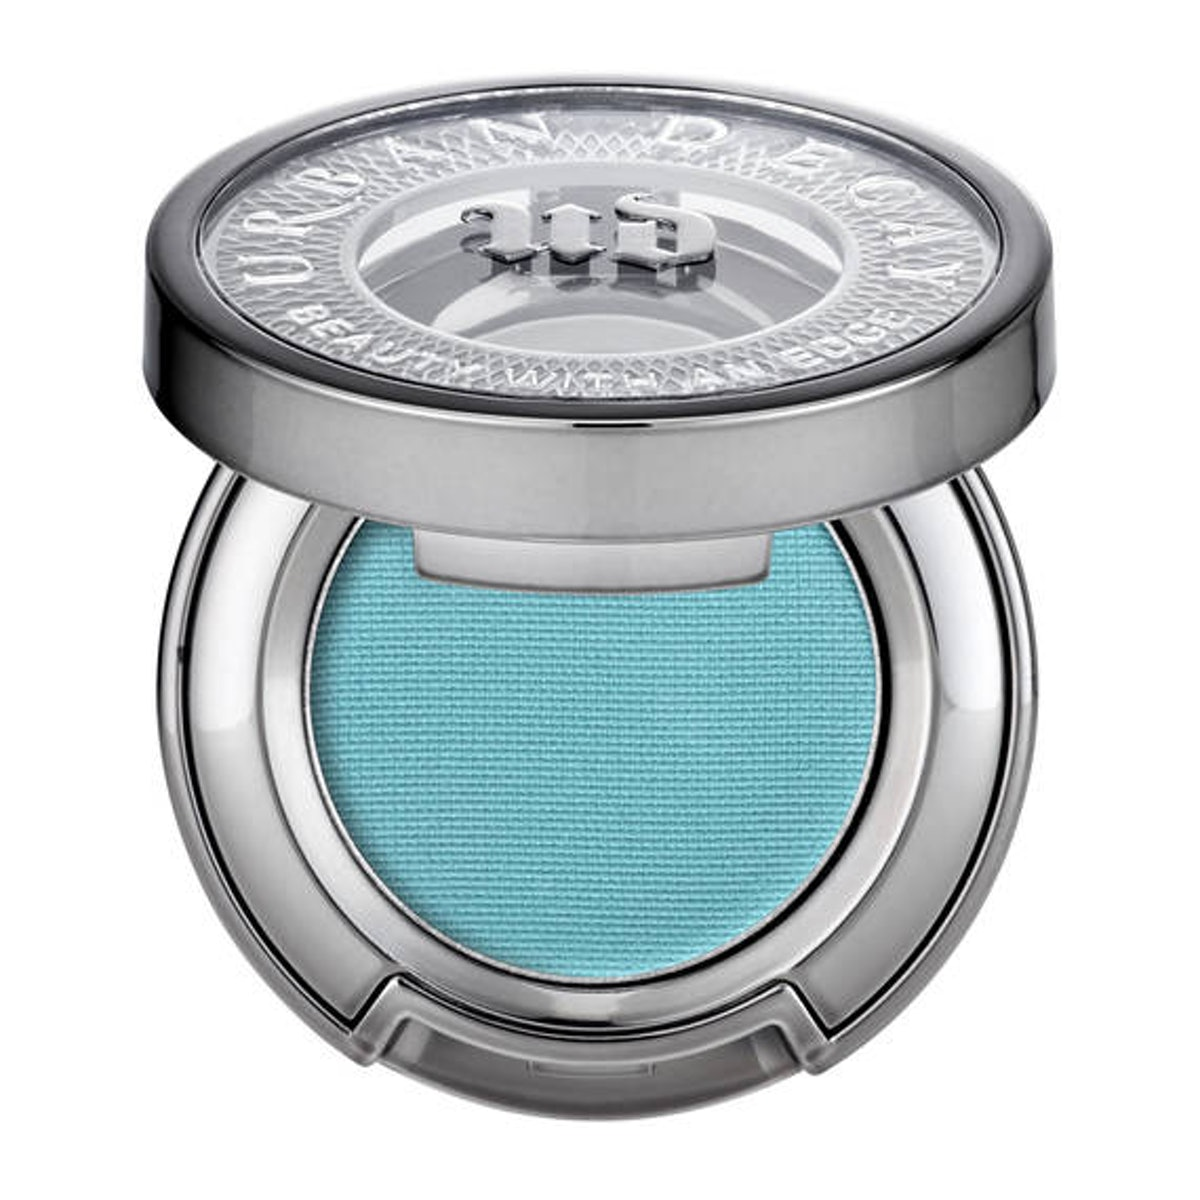 Eyeshadow in Narcotic